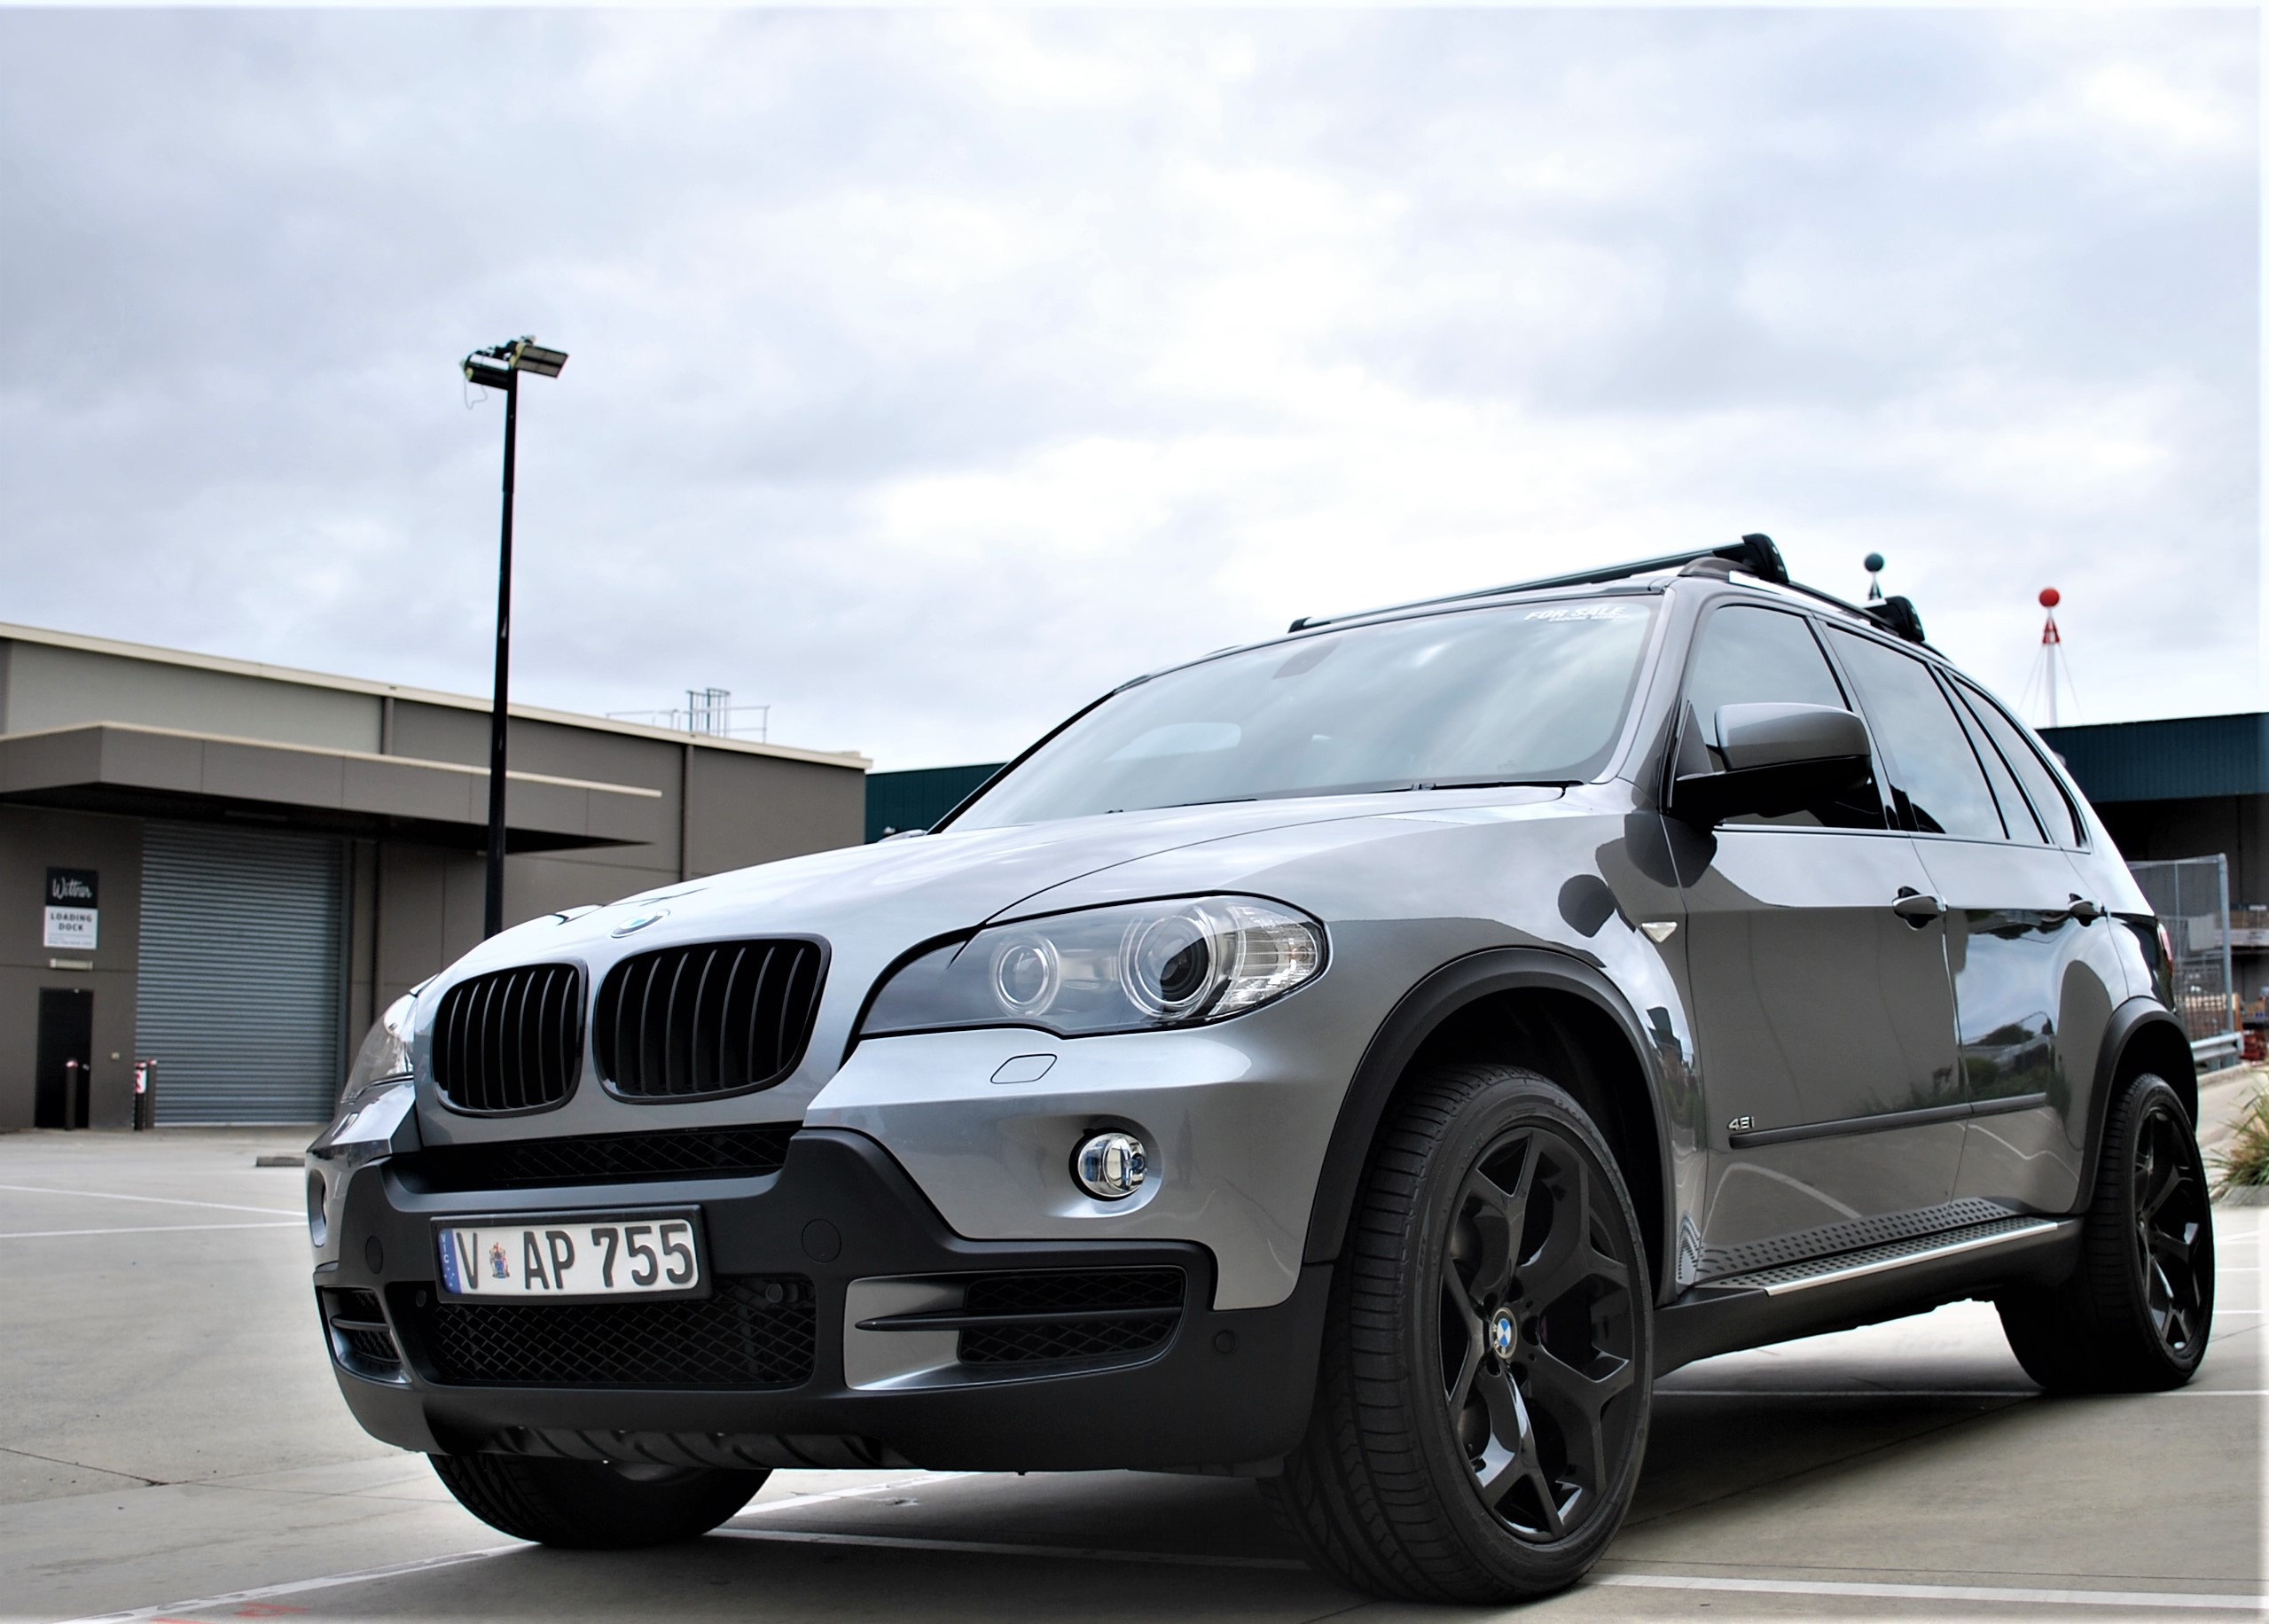 2008 bmw x5 e70 auto 4 4 find me cars. Black Bedroom Furniture Sets. Home Design Ideas